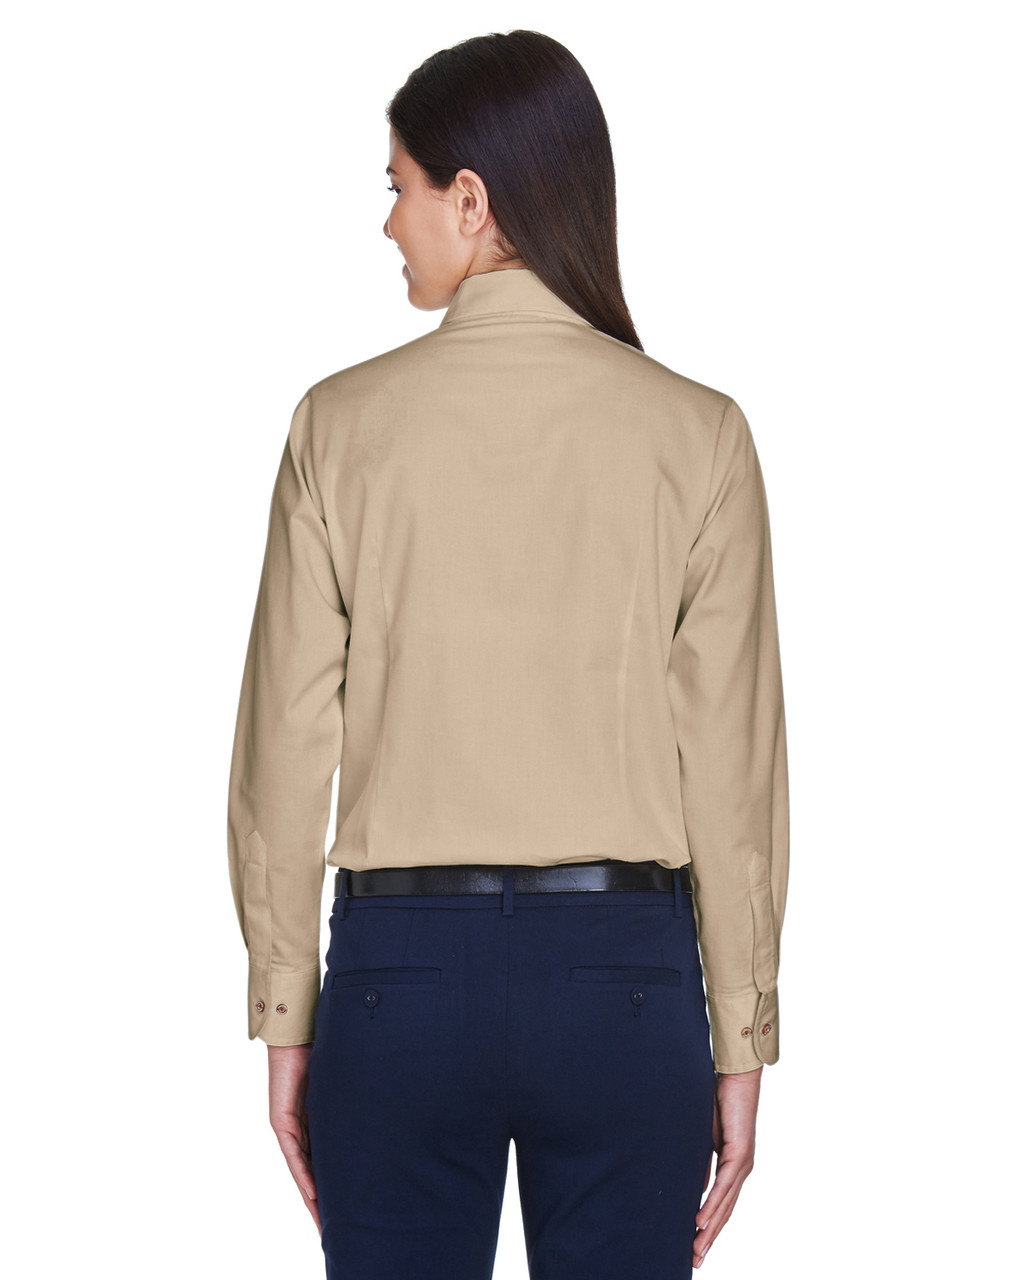 Stone - Back, M500W Harriton Easy Blend Long-Sleeve Twill Shirt with Stain-Release | BlankClothing.ca